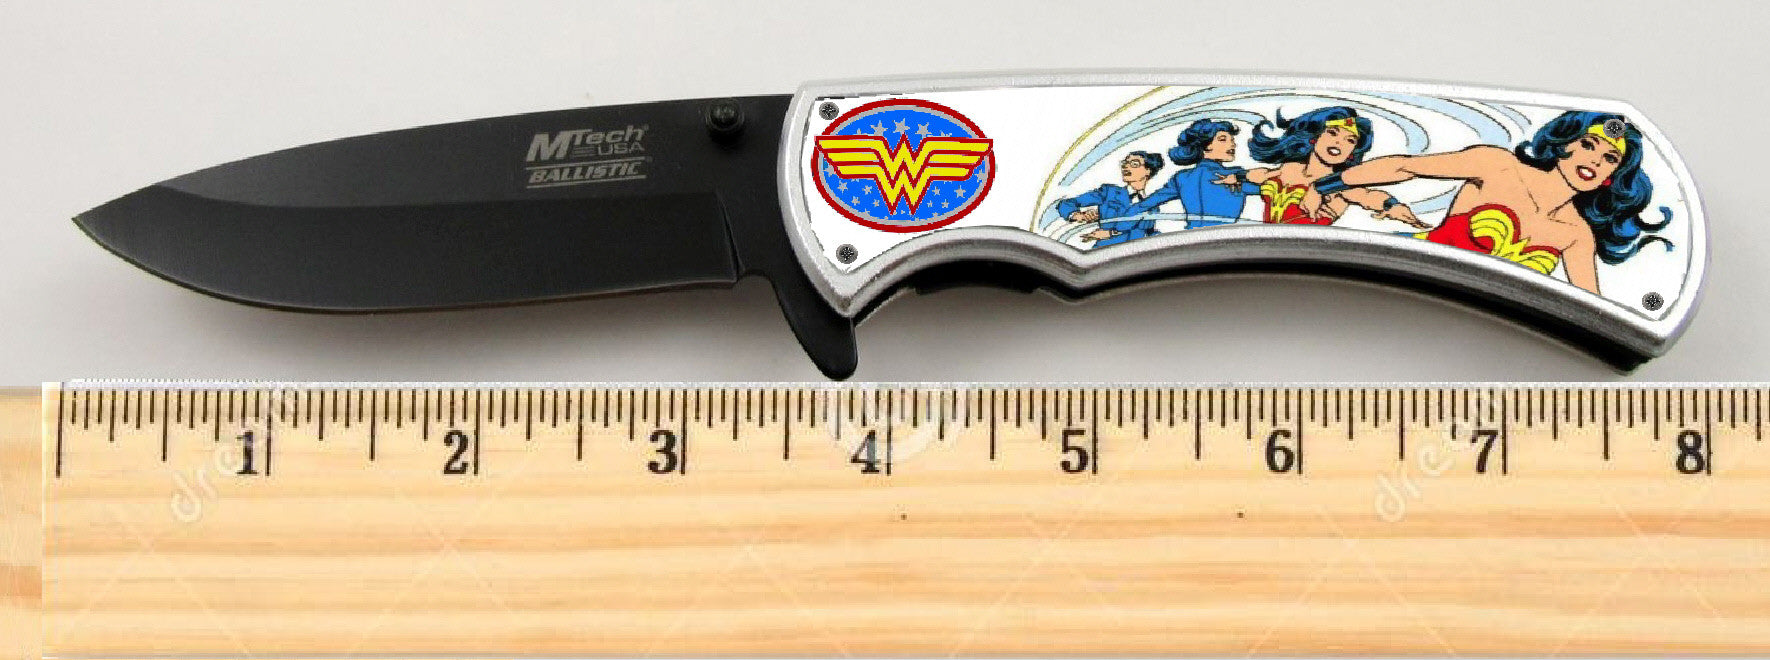 "Wonder Woman Limited Edition Spring Assisted Knife 4.5"" when closed , knives - Final Score Products, Final Score Products  - 1"